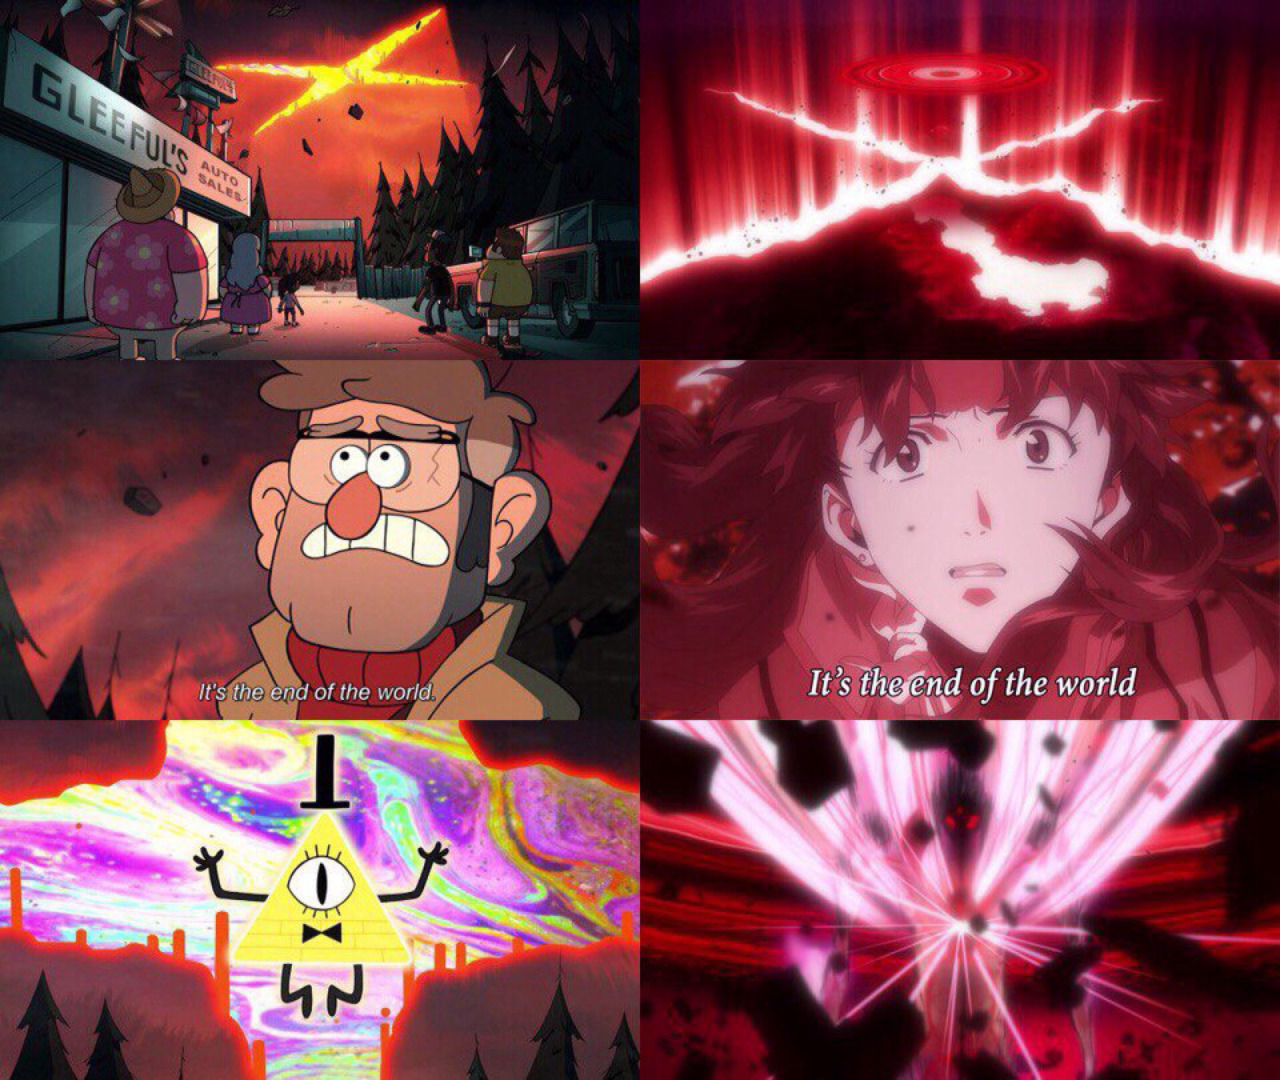 Mobile Wallpapers Gravity Falls Gravity Falls Evangelion Gravity Falls Know Your Meme